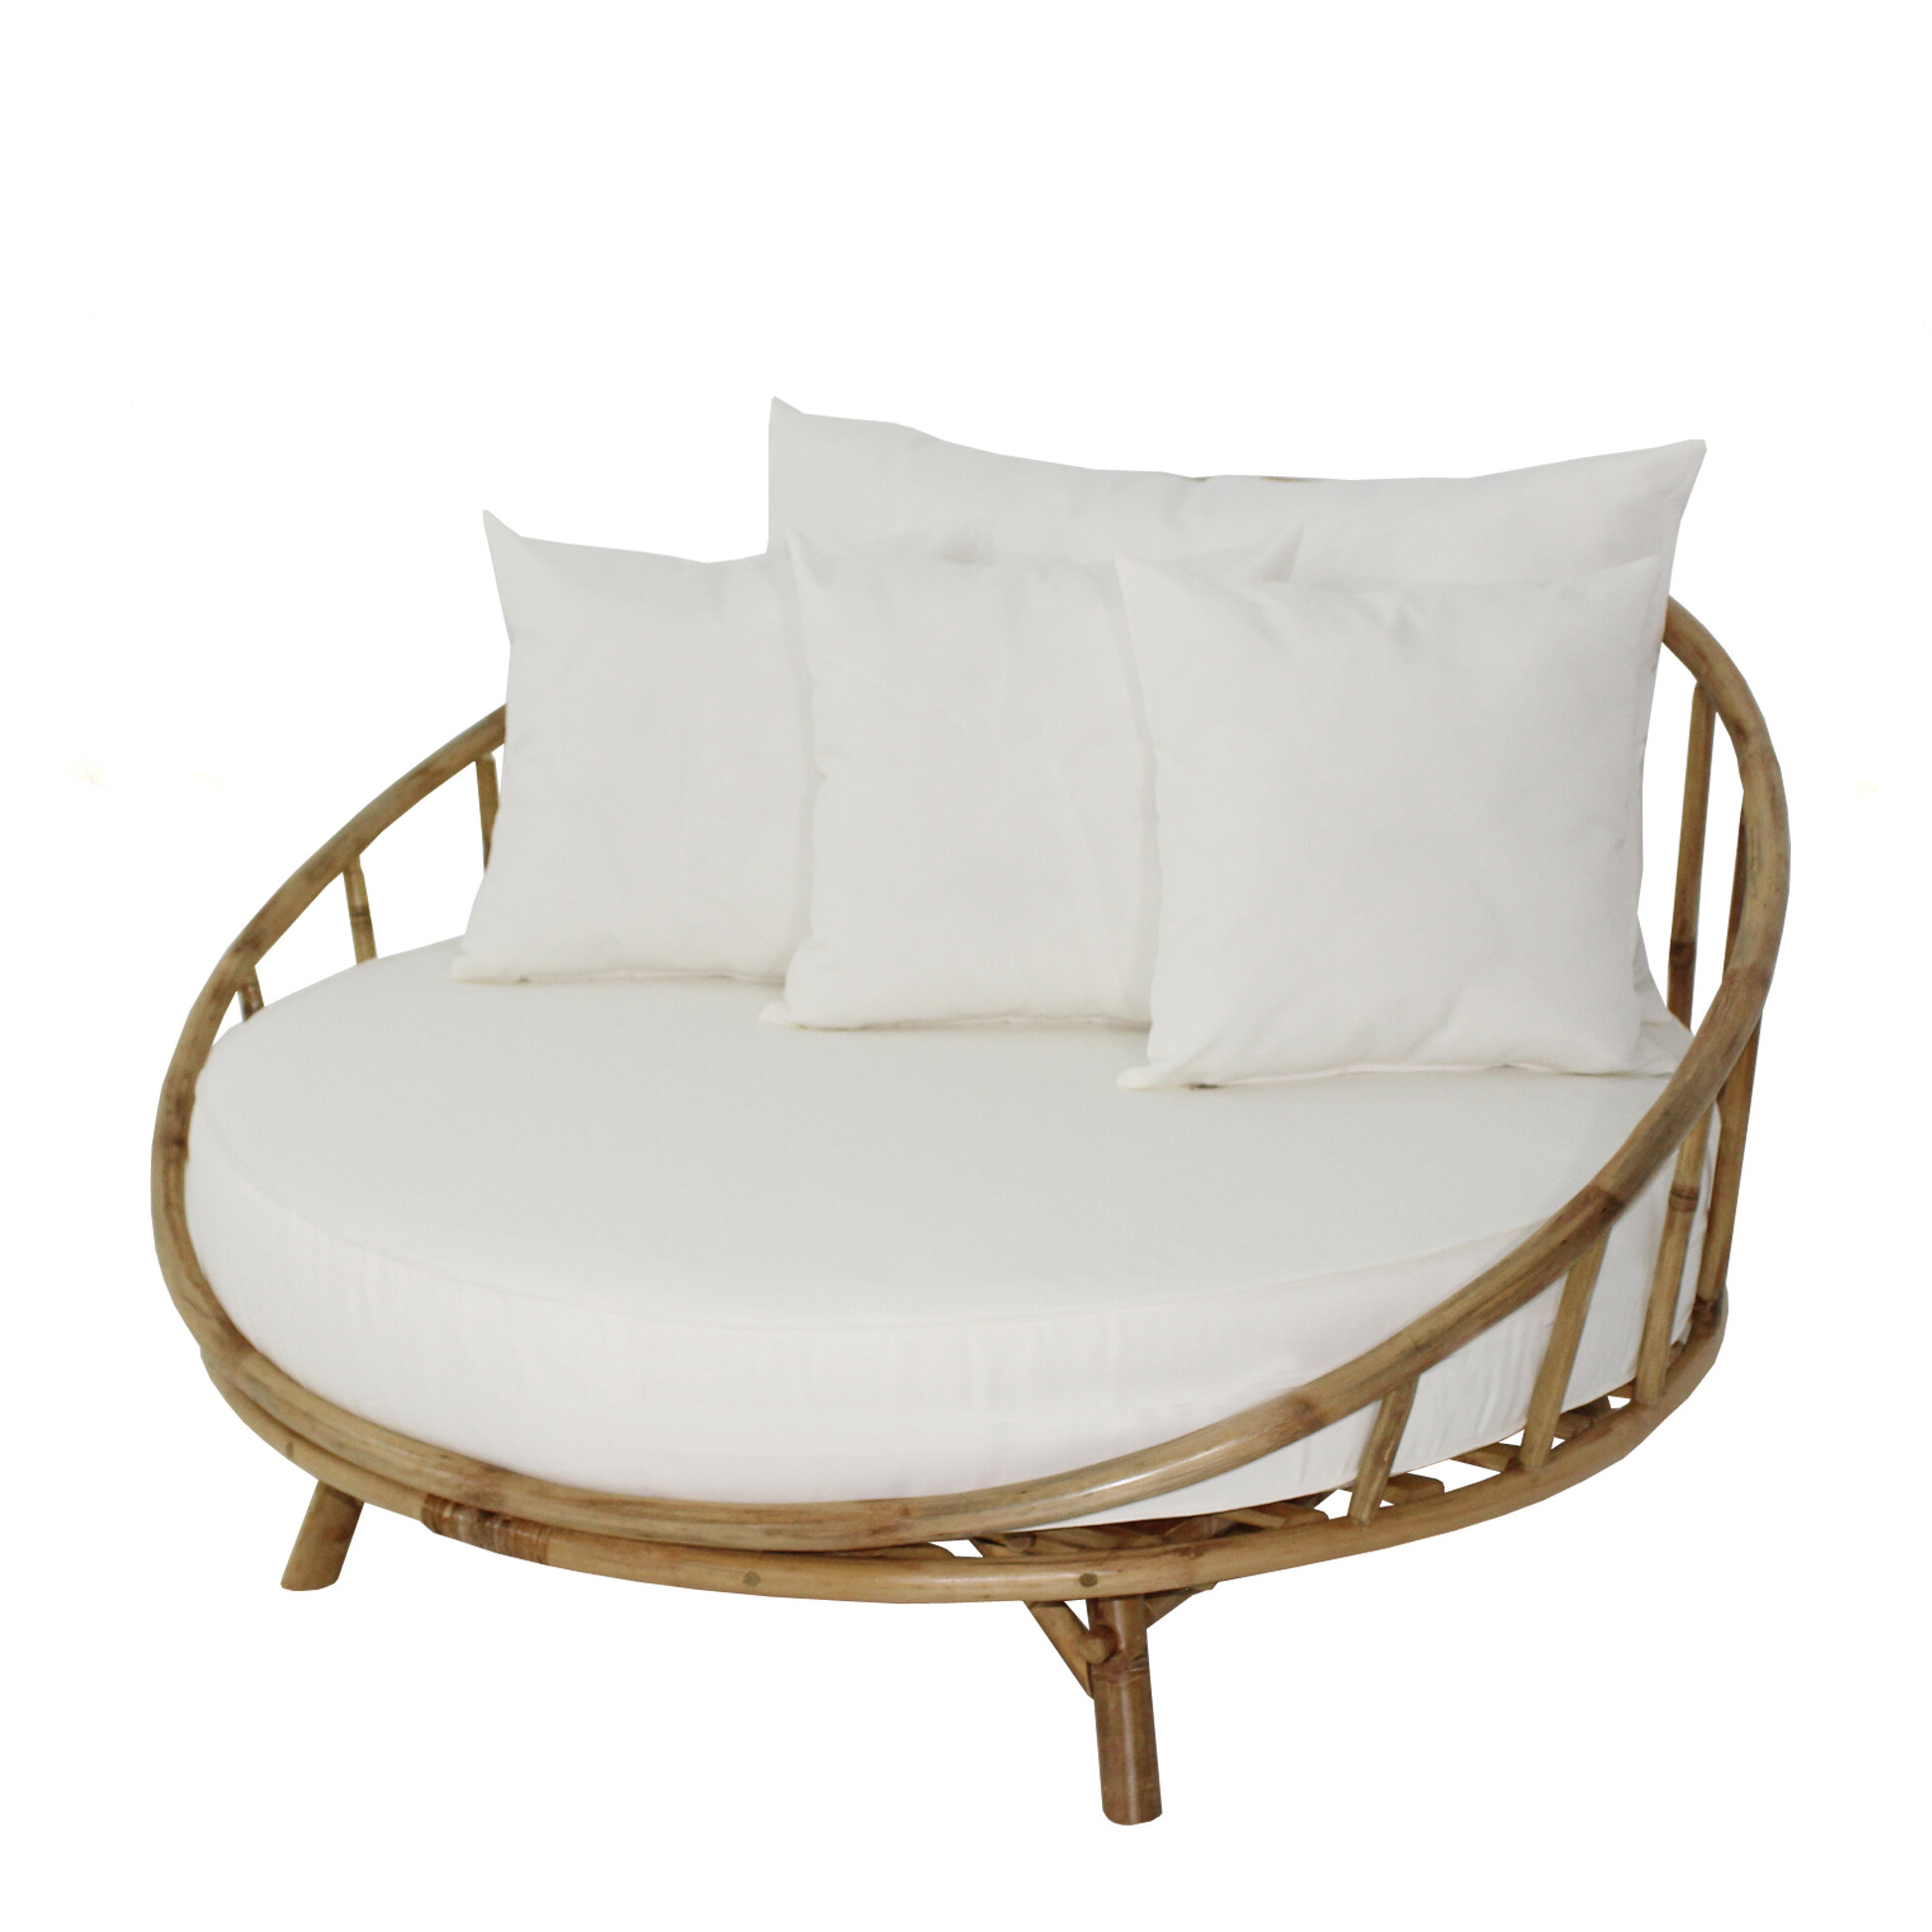 Most Up To Date Bodine Patio Daybeds With Cushions Intended For Olu Bamboo Large Round Patio Daybed With Cushions (View 19 of 25)